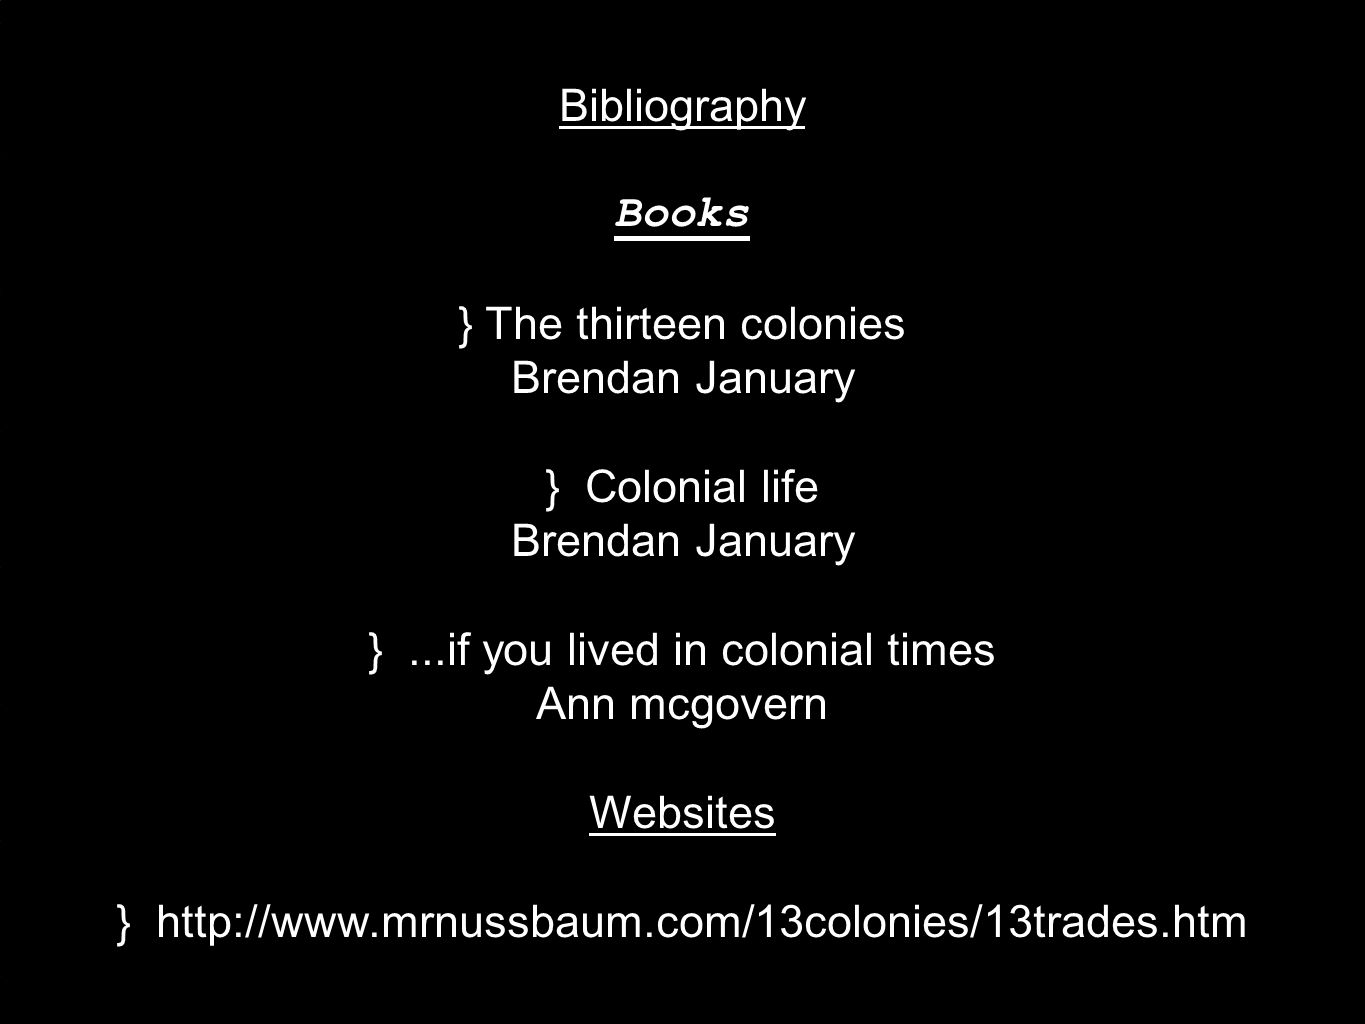 Bibliography Books } The thirteen colonies Brendan January } Colonial life Brendan January }...if you lived in colonial times Ann mcgovern Websites } http://www.mrnussbaum.com/13colonies/13trades.htm